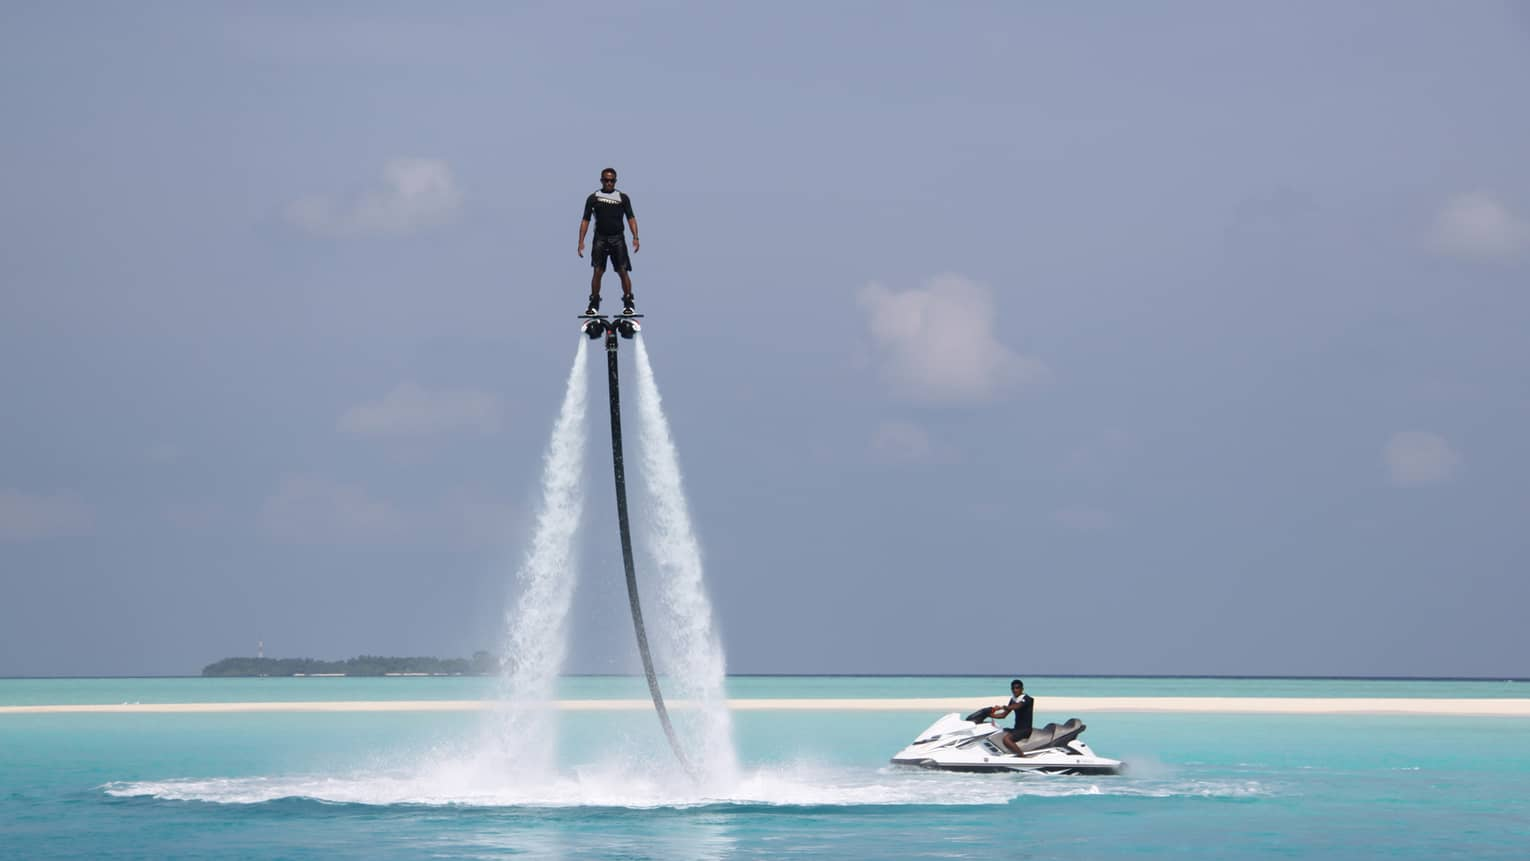 Person hovers suspended in air above ocean on X Jetblade pack, near jetski